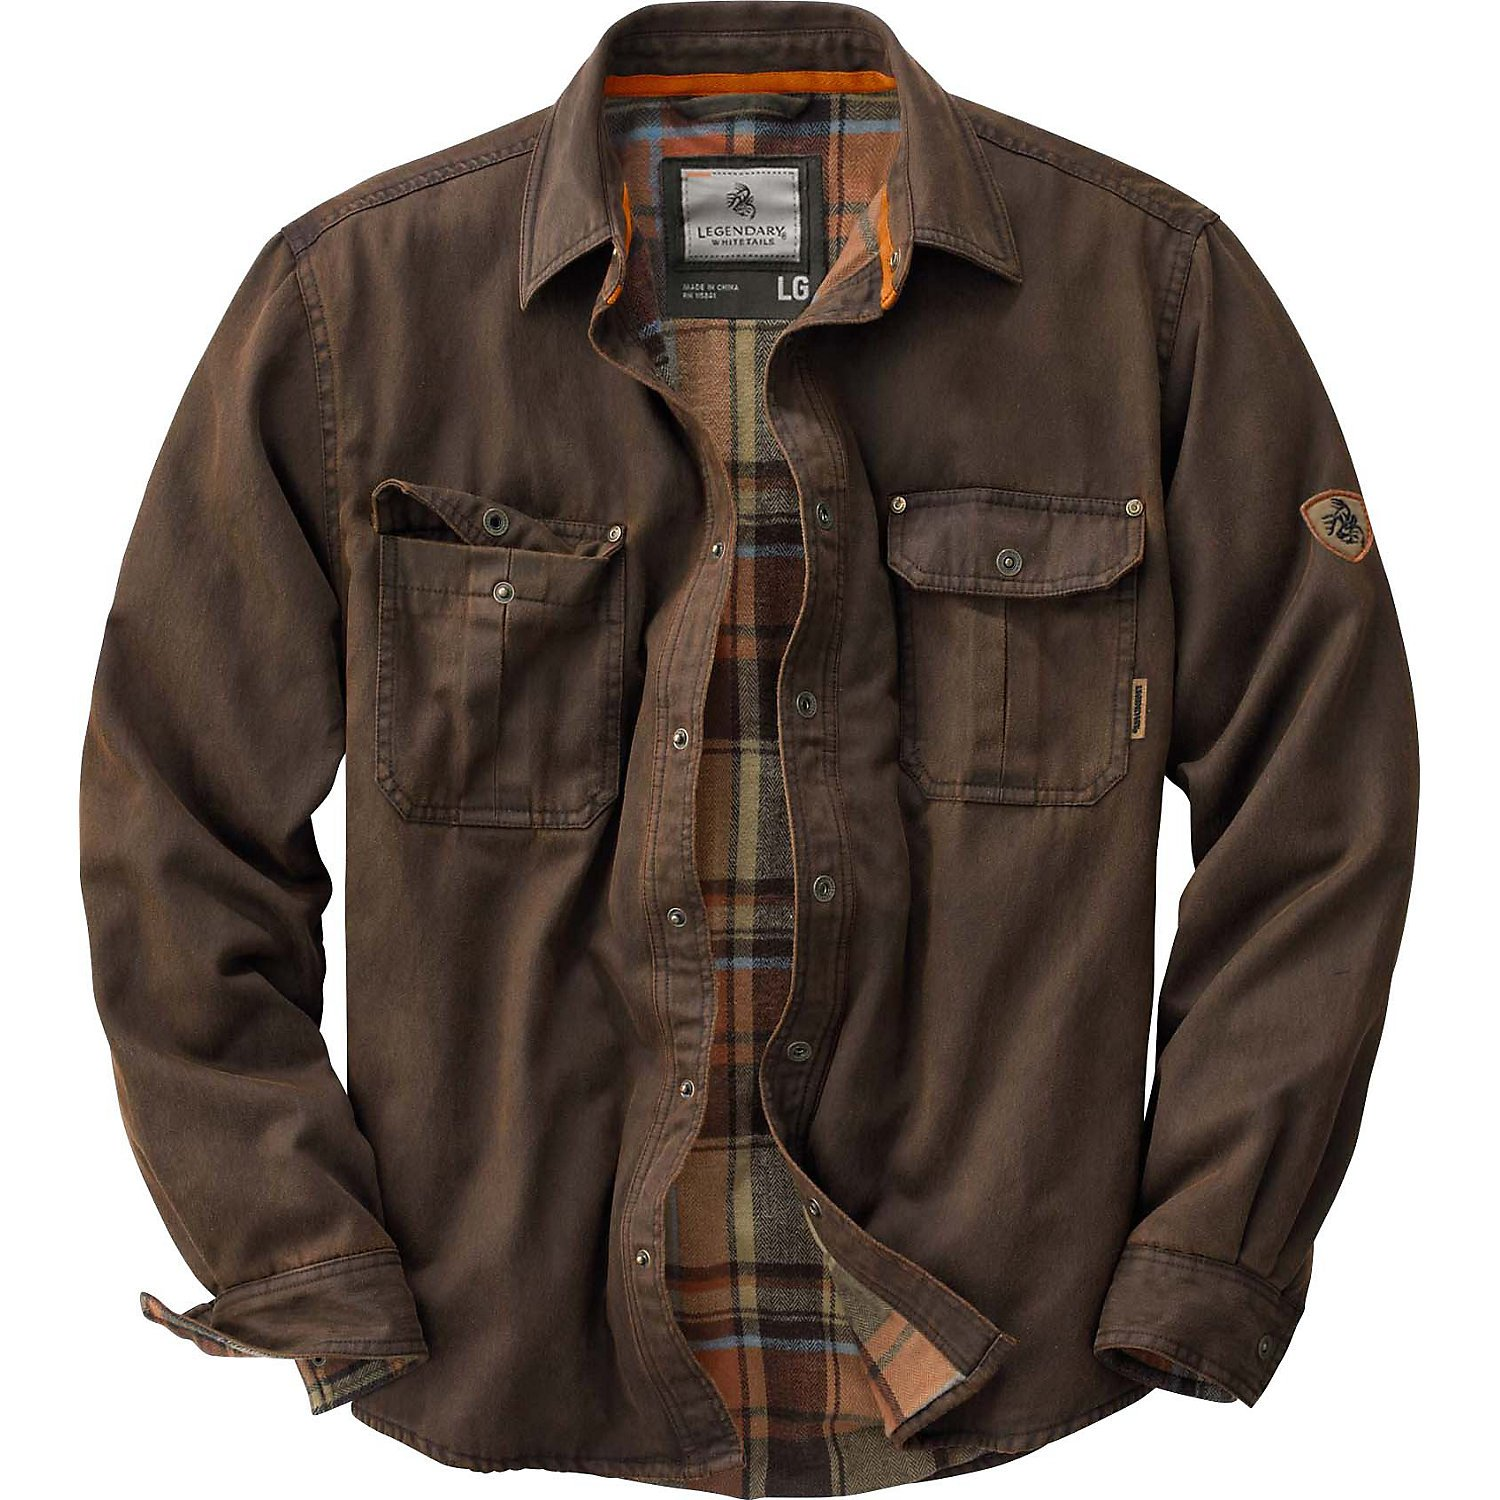 Legendary Whitetails Men's Journeyman Rugged Shirt Jacket Tobacco XX-Large